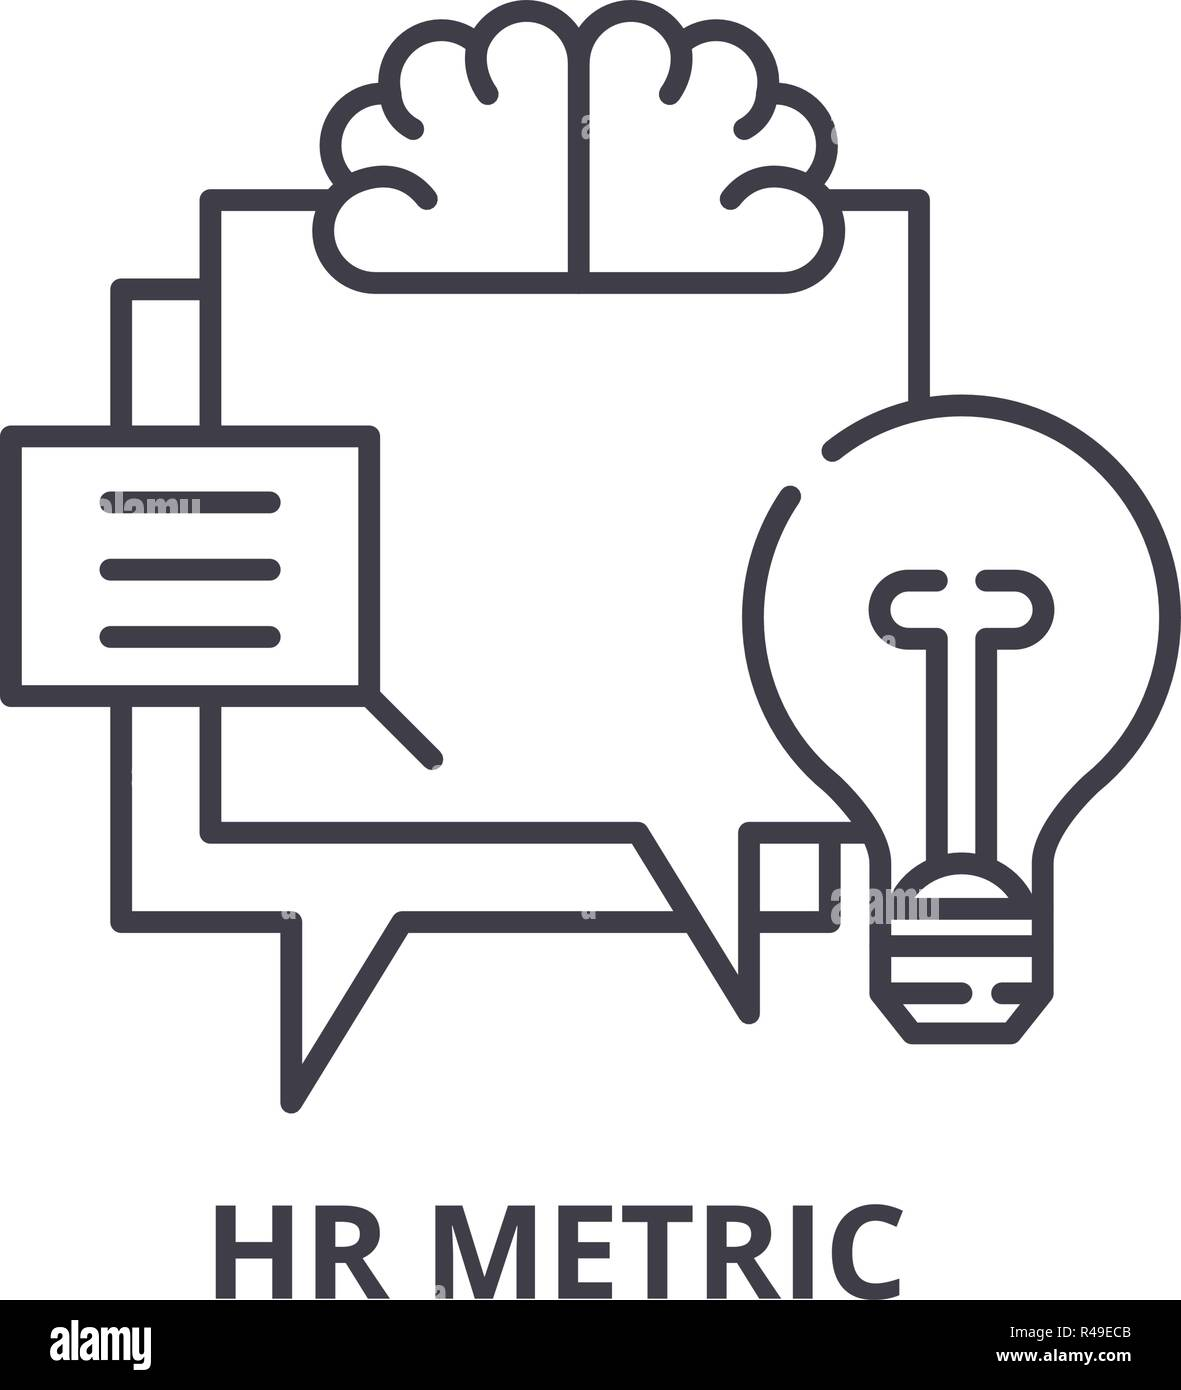 Hr metric line icon concept. Hr metric vector linear illustration, symbol, sign - Stock Vector